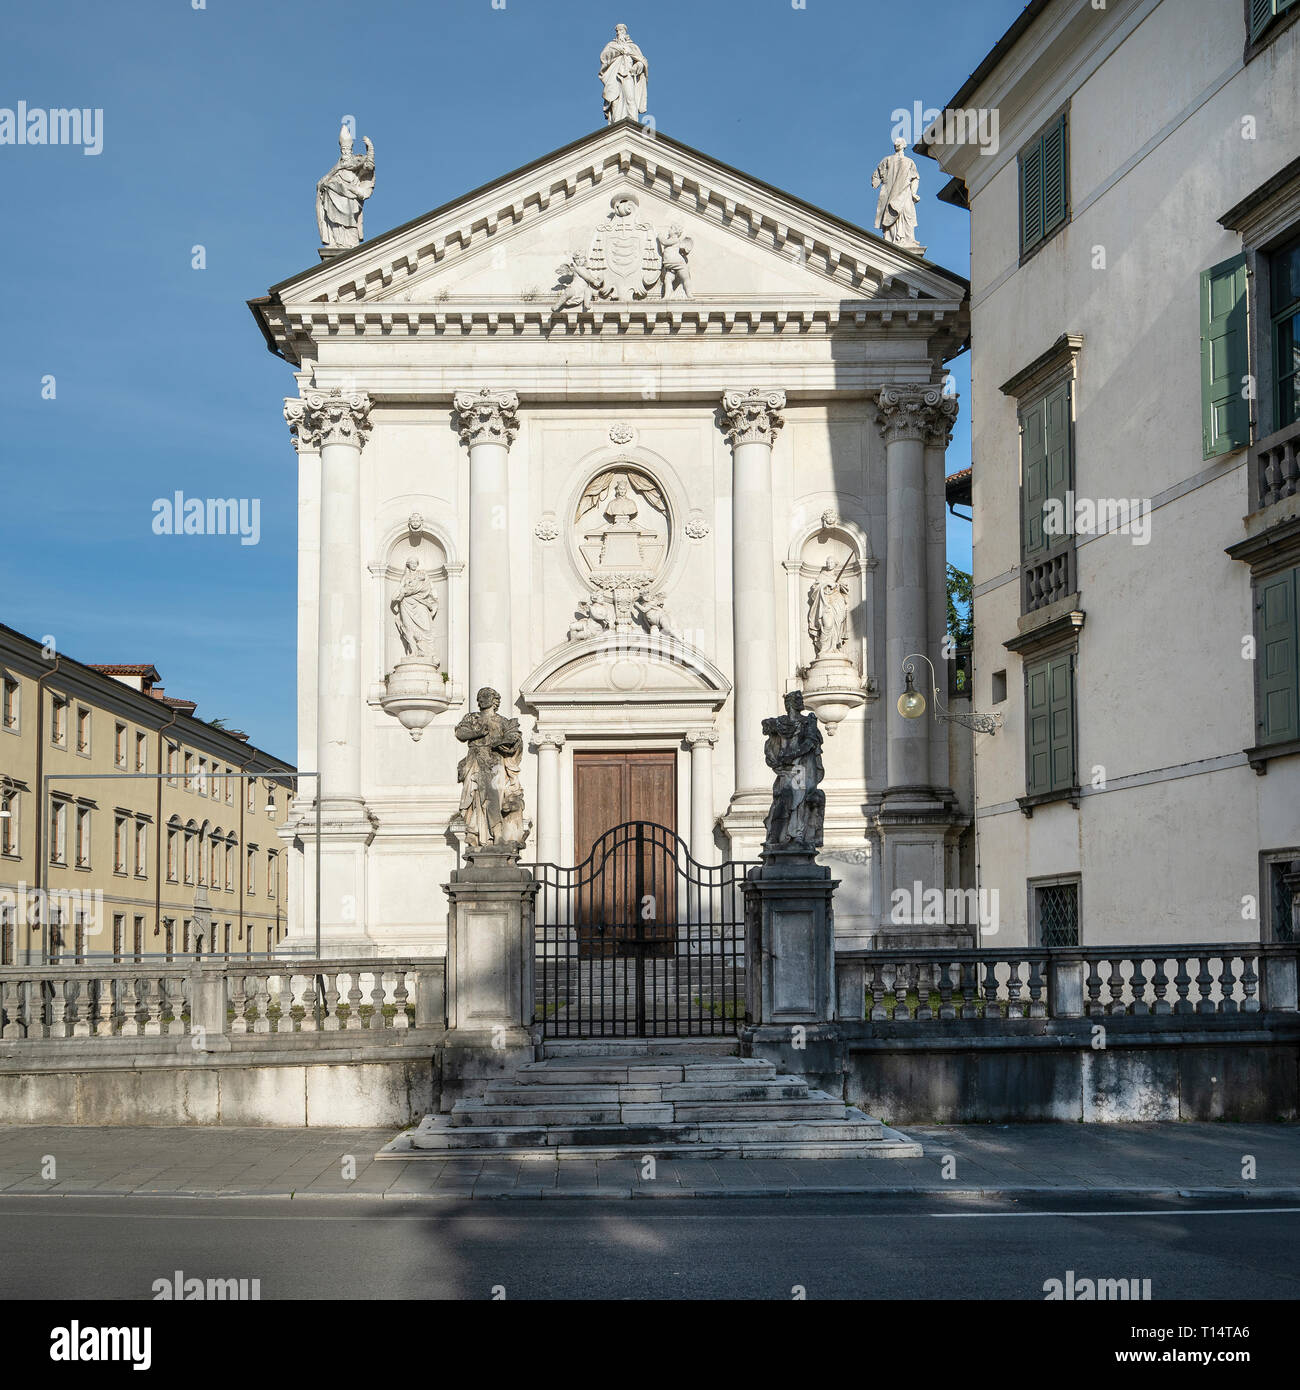 Udine, Friuli Venezia Giulia region, Italy. March 22 2019.   The church of San Sant'Antonio Abate, a religious building, now deconsecrated in the cent - Stock Image